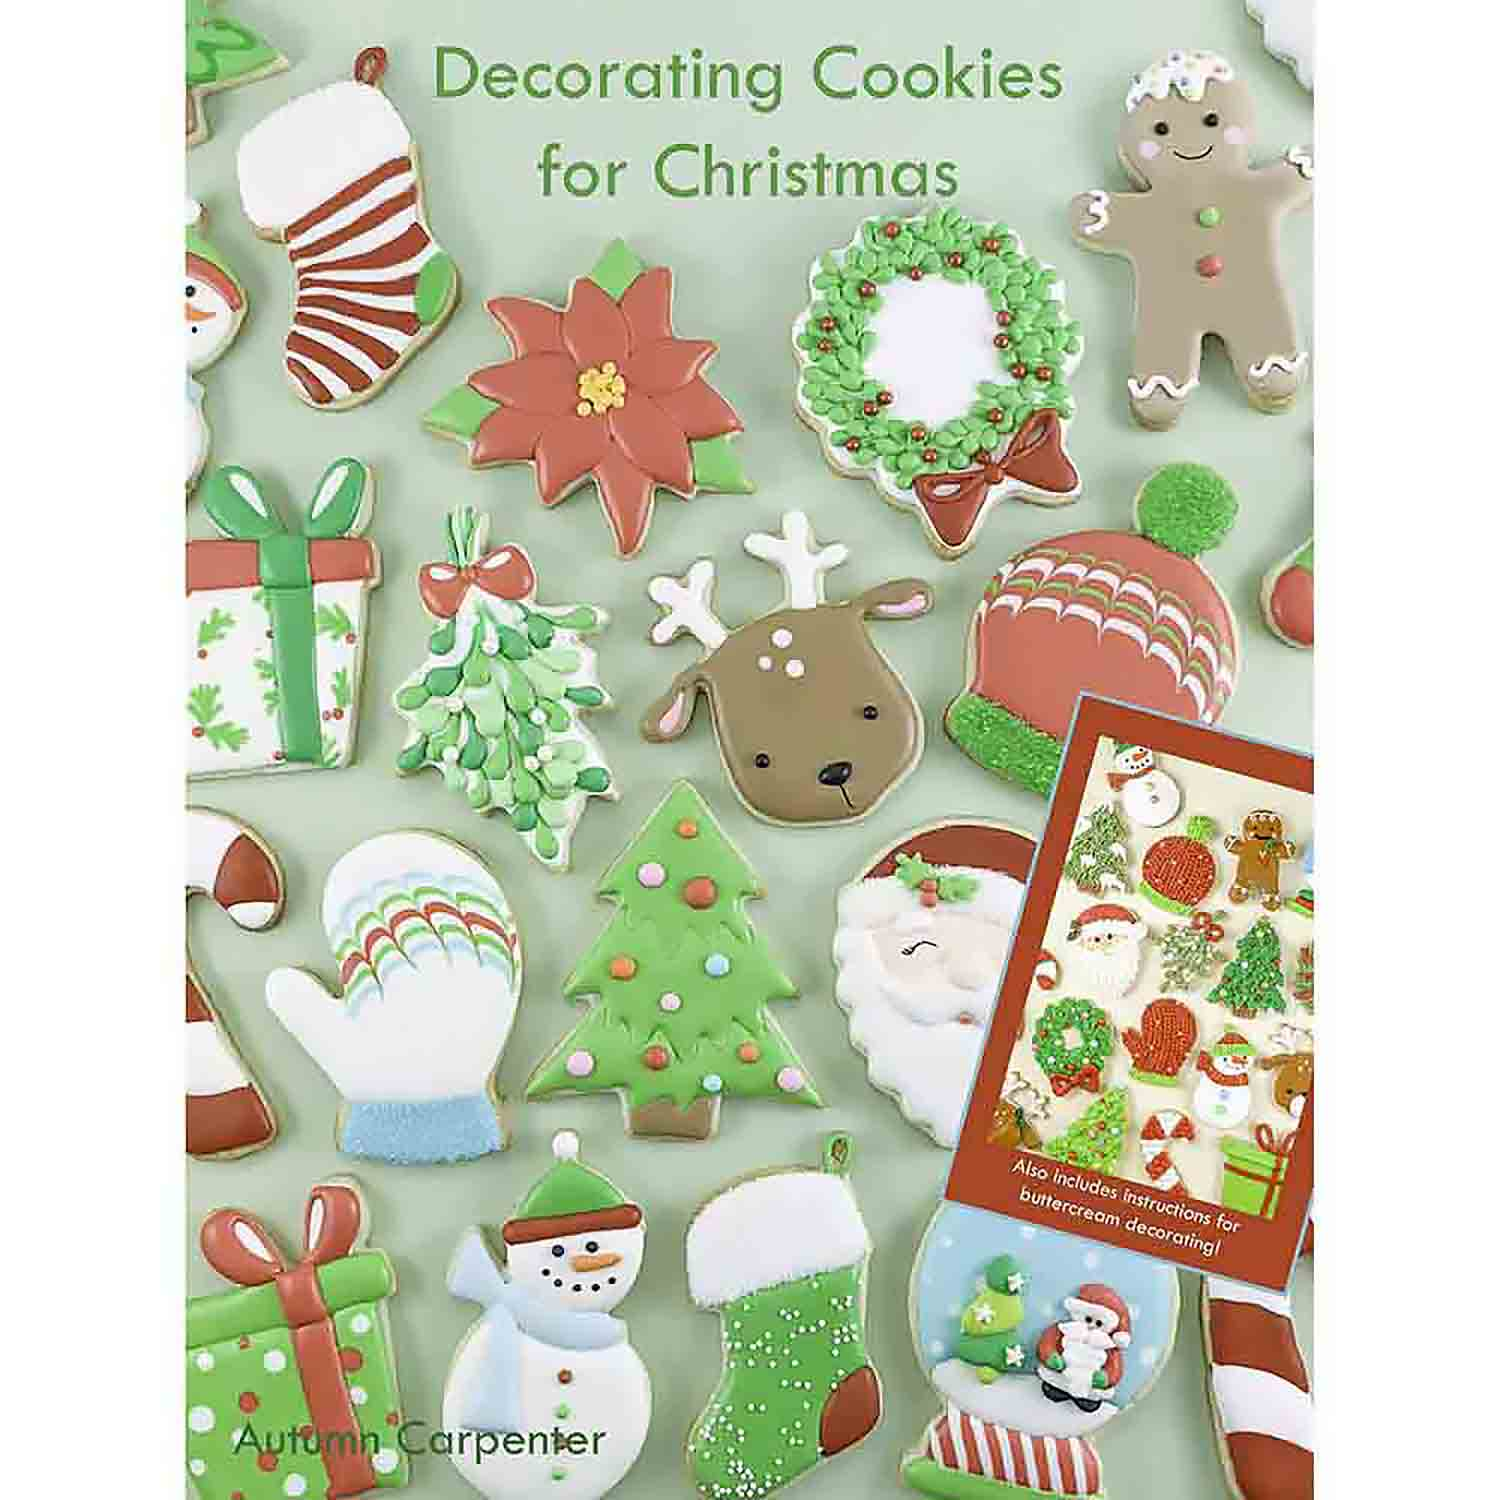 Carpenter - Decorating Cookies for Christmas